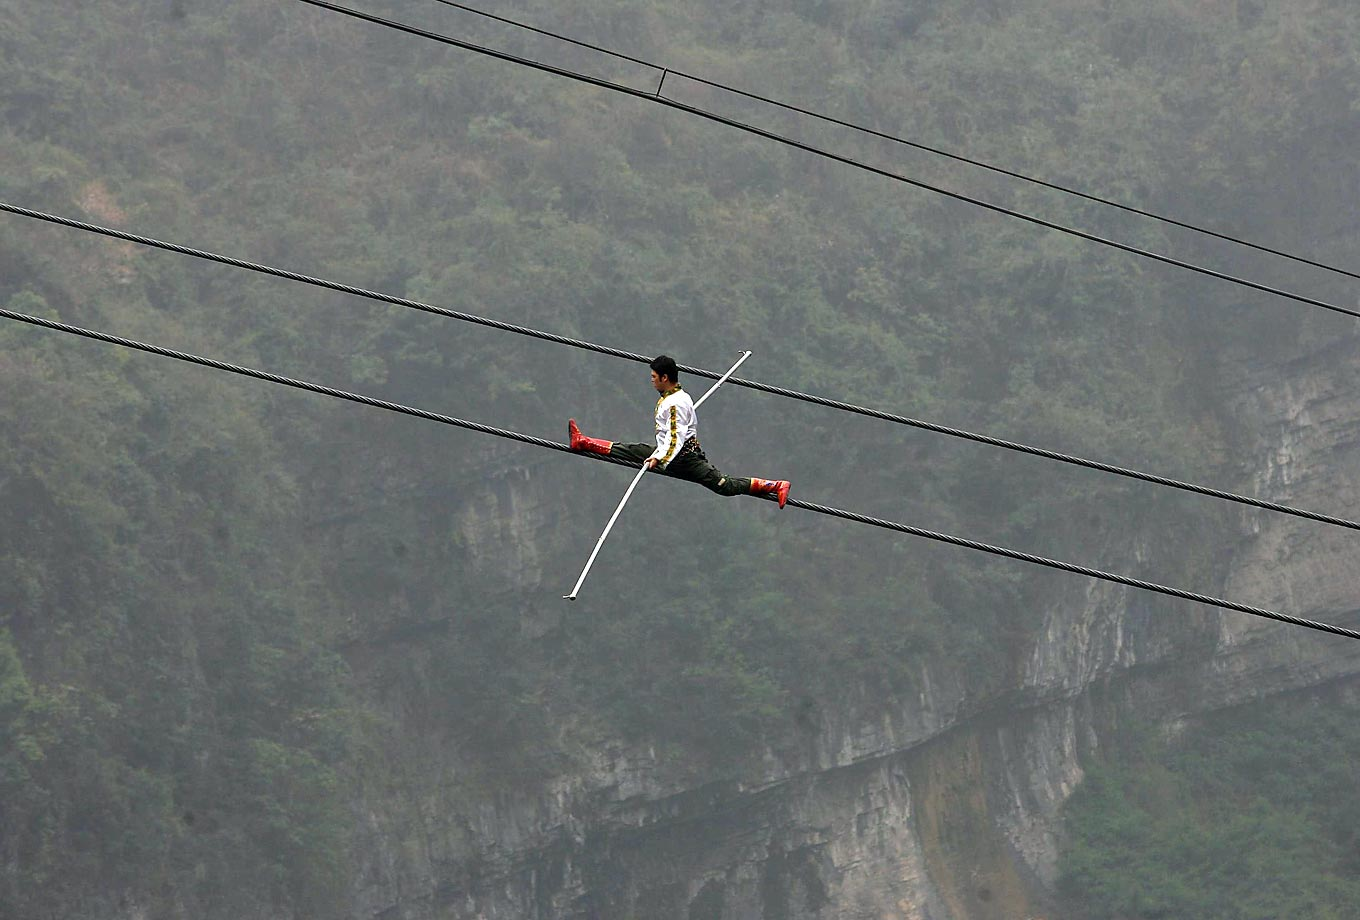 Saimaiti Aishan, the seventh-generation Dawazi high wire stuntman from China, challenges the Tianmenshan Mountain cableway in Zhangjiajie, China. Unfortunately, the steepest section of the cable defeated Aishan, and he could not complete his walk.